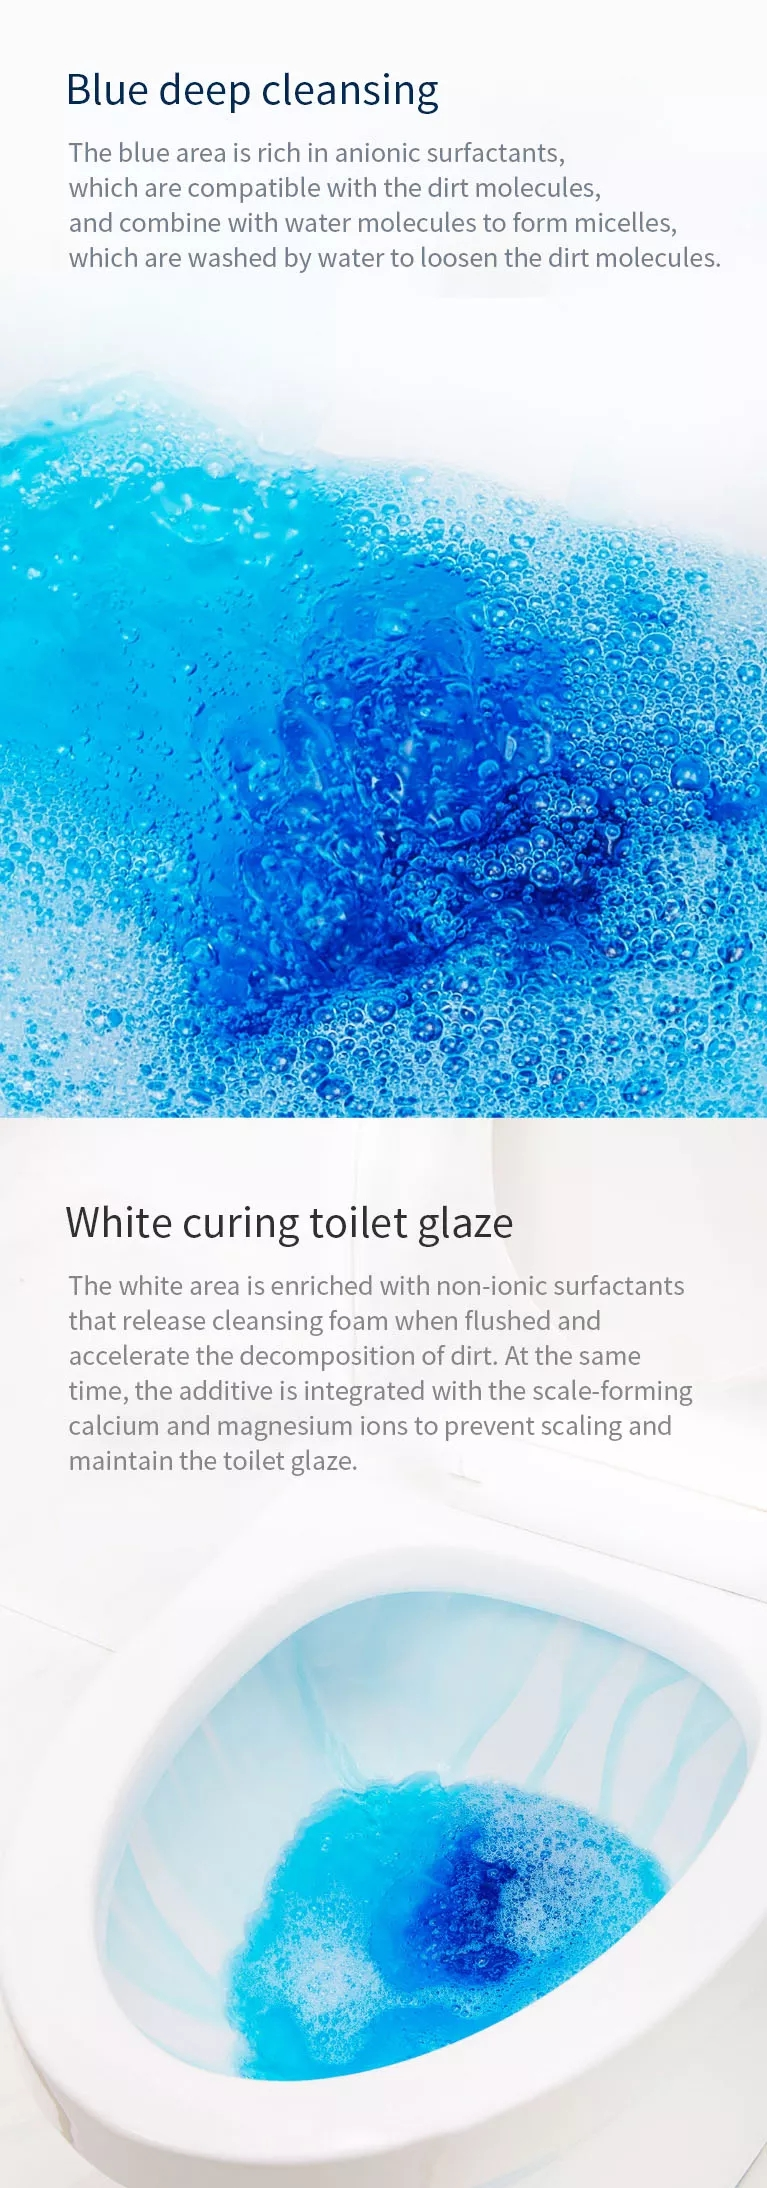 Xiaomi Clean-n-Fresh Automatic Flush Blue Bubble Toilet Cleaner Deodorization Cleaning Household for Bathroom Restroom Cleaner (2)